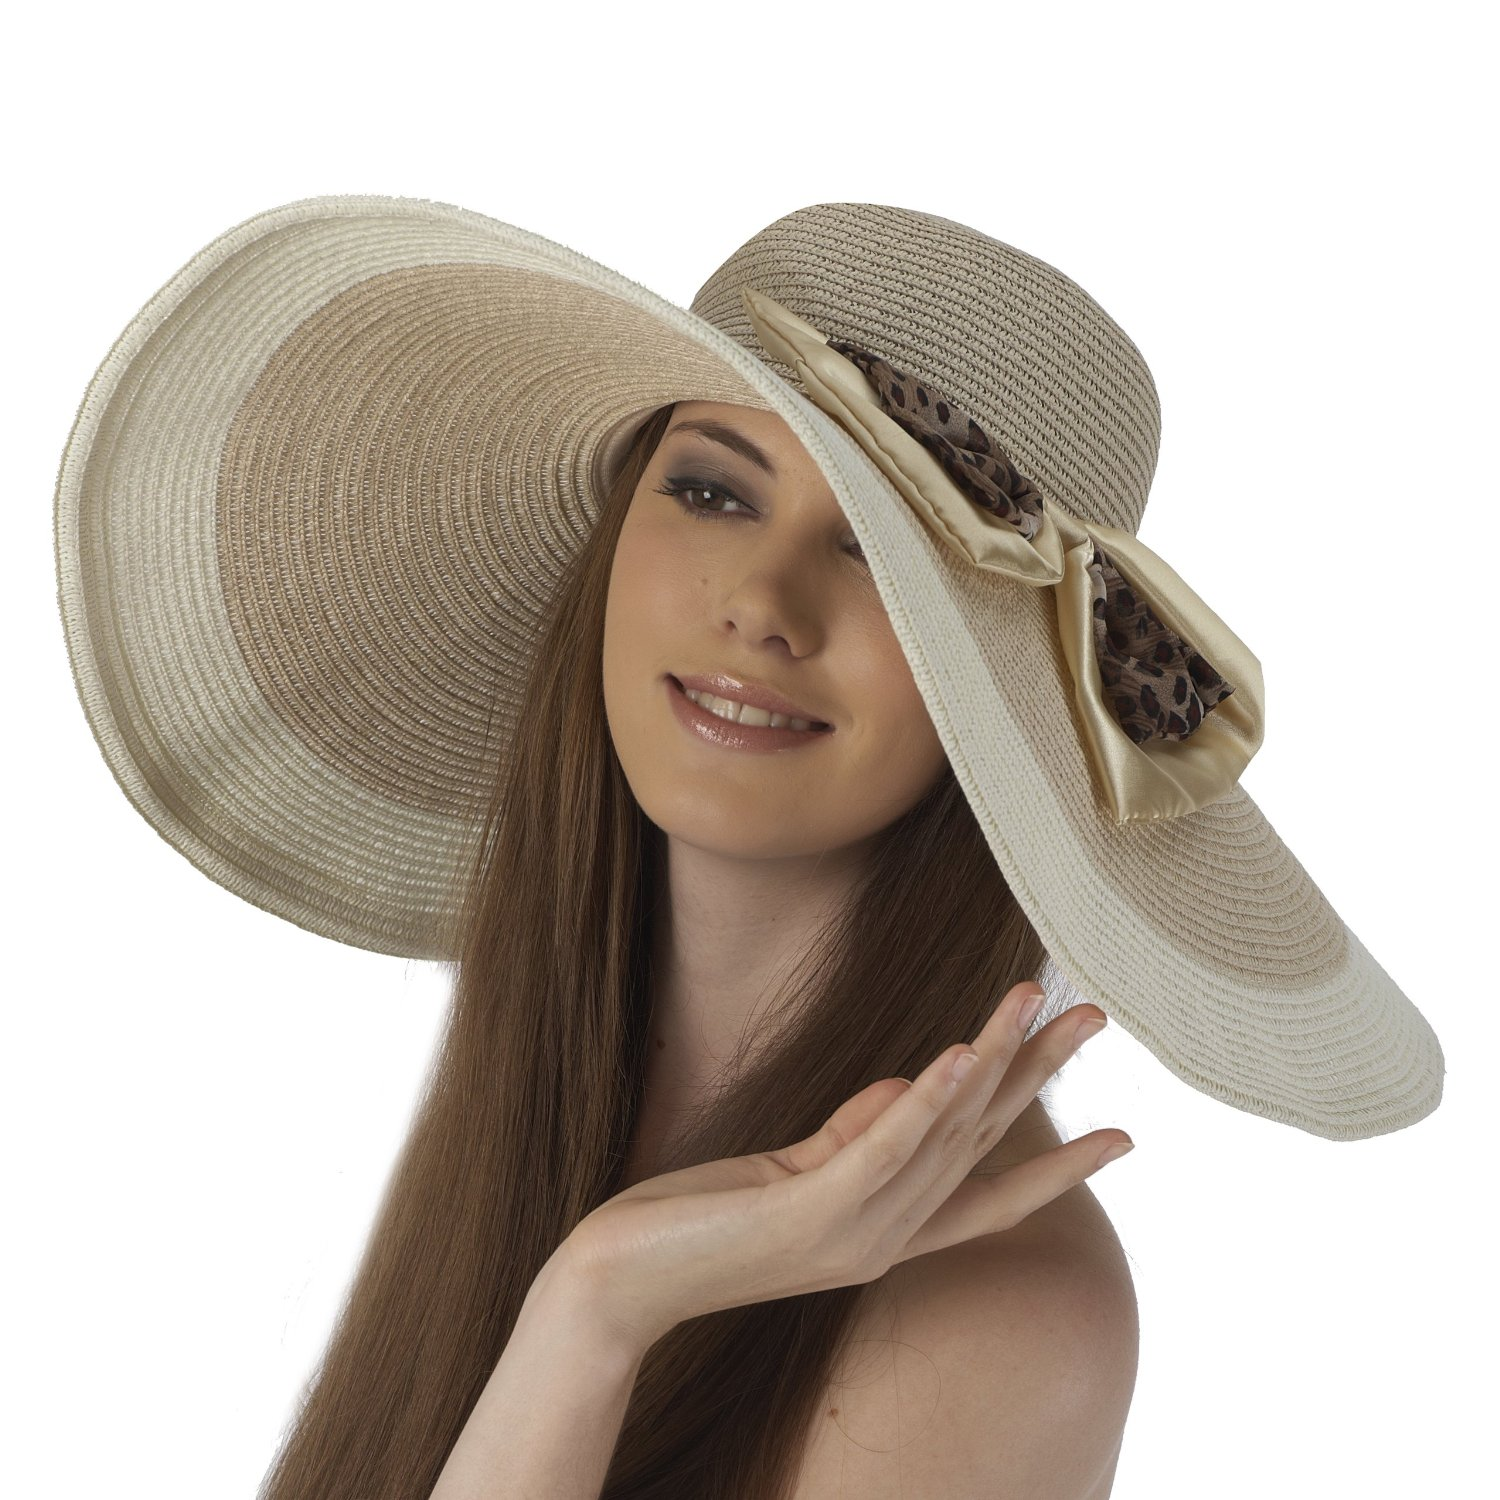 Womens Hats Stand out from the crowd and look great, in the hats and accessories that DelMonico Hatter has selected especially for women, organized by season. We have hats for staying cool and stylish at weddings, church and holiday parties.